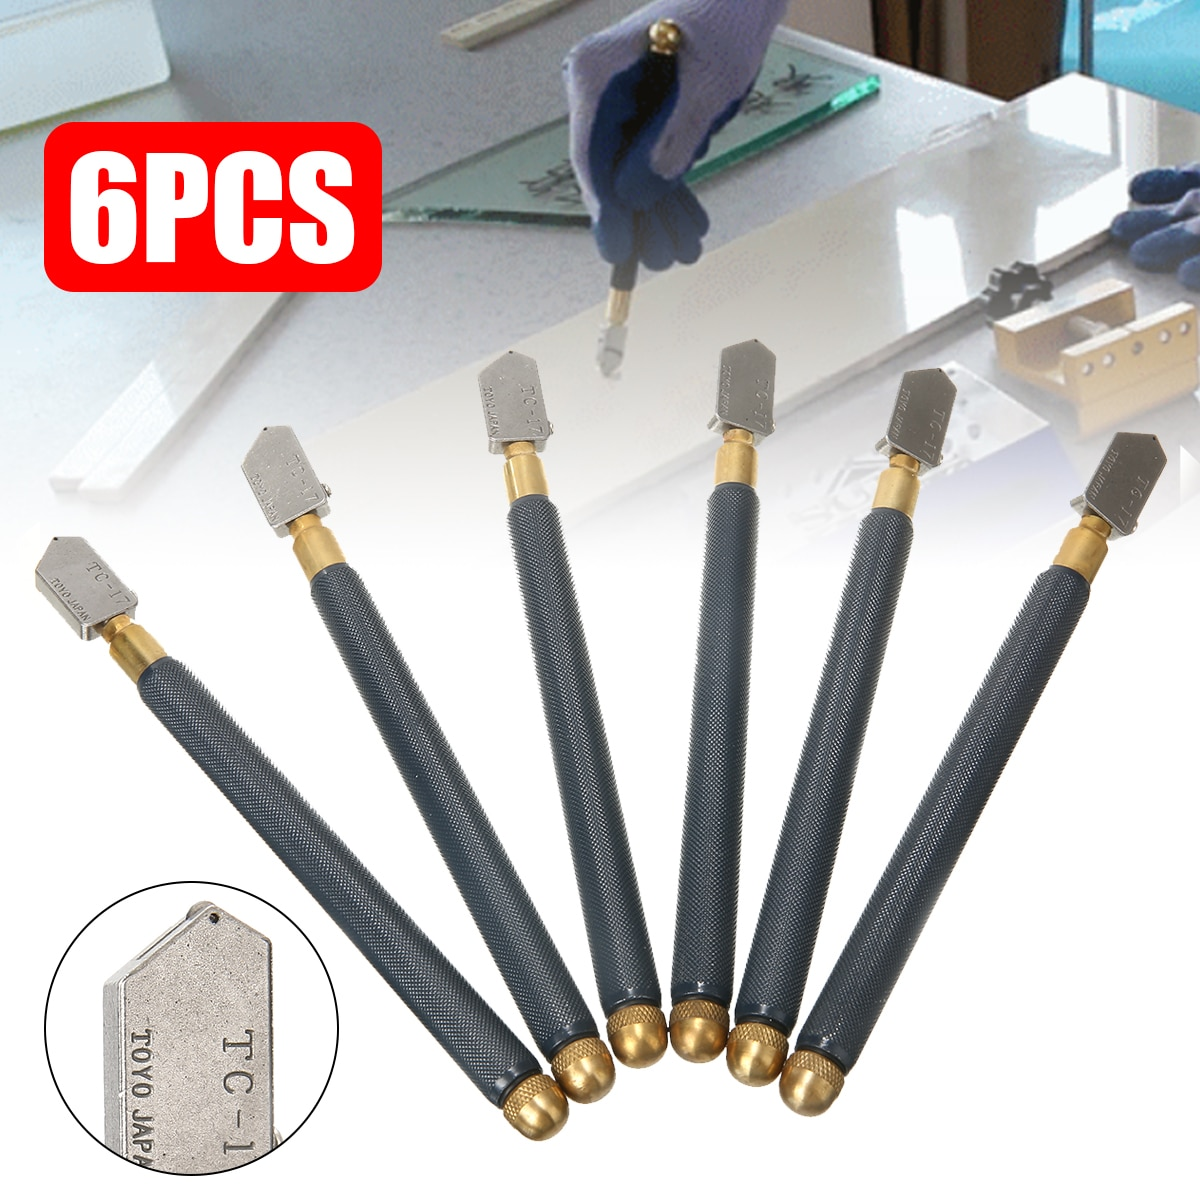 4 sizes new high strength and hardness glass straight cutting tile cutter head glass cutter replacement tc 17 tc 30 tc 10 tc 90 6pcs/lot Glass Cutting Antislip Carbide Metal Tools  TC-17 Oil Glass Cutter Metal Handle Diamond Straight Head Cutting Tool